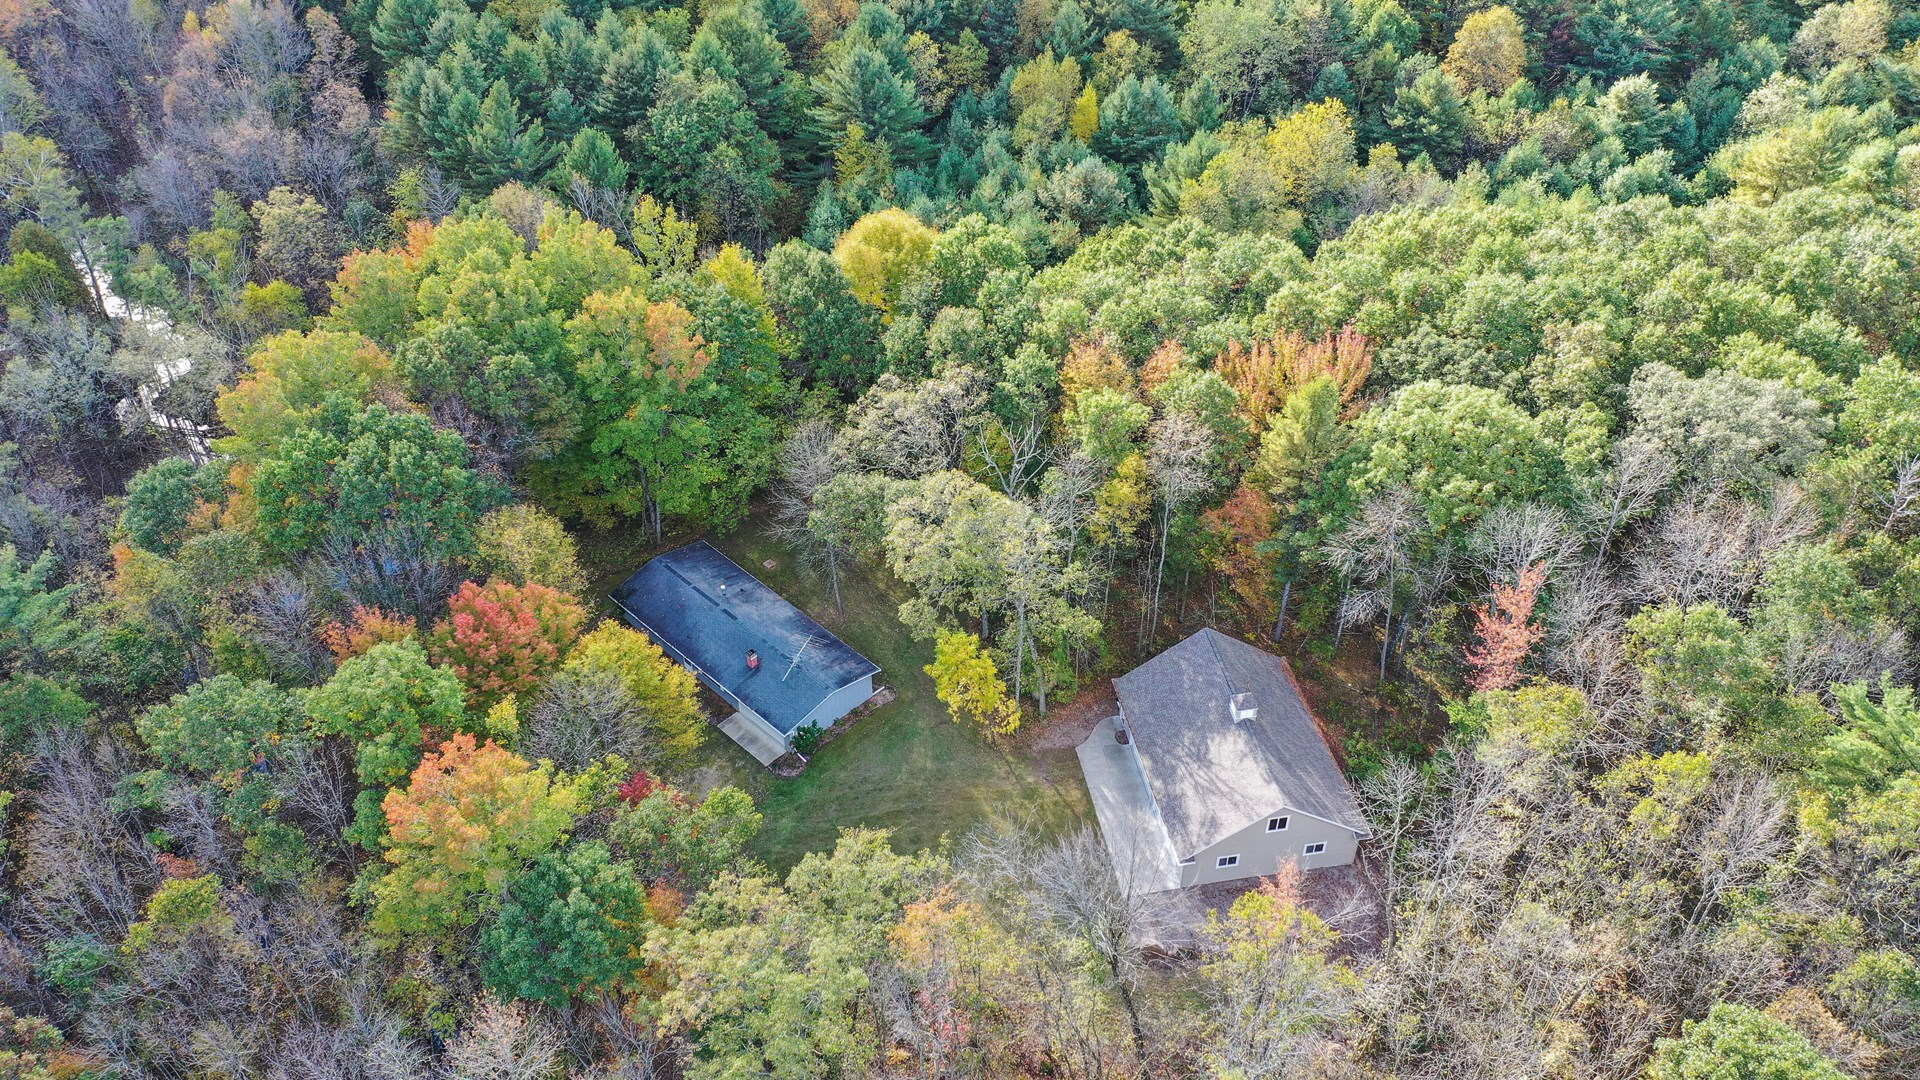 Waupaca County Hunting Property For Sale Iola, WI